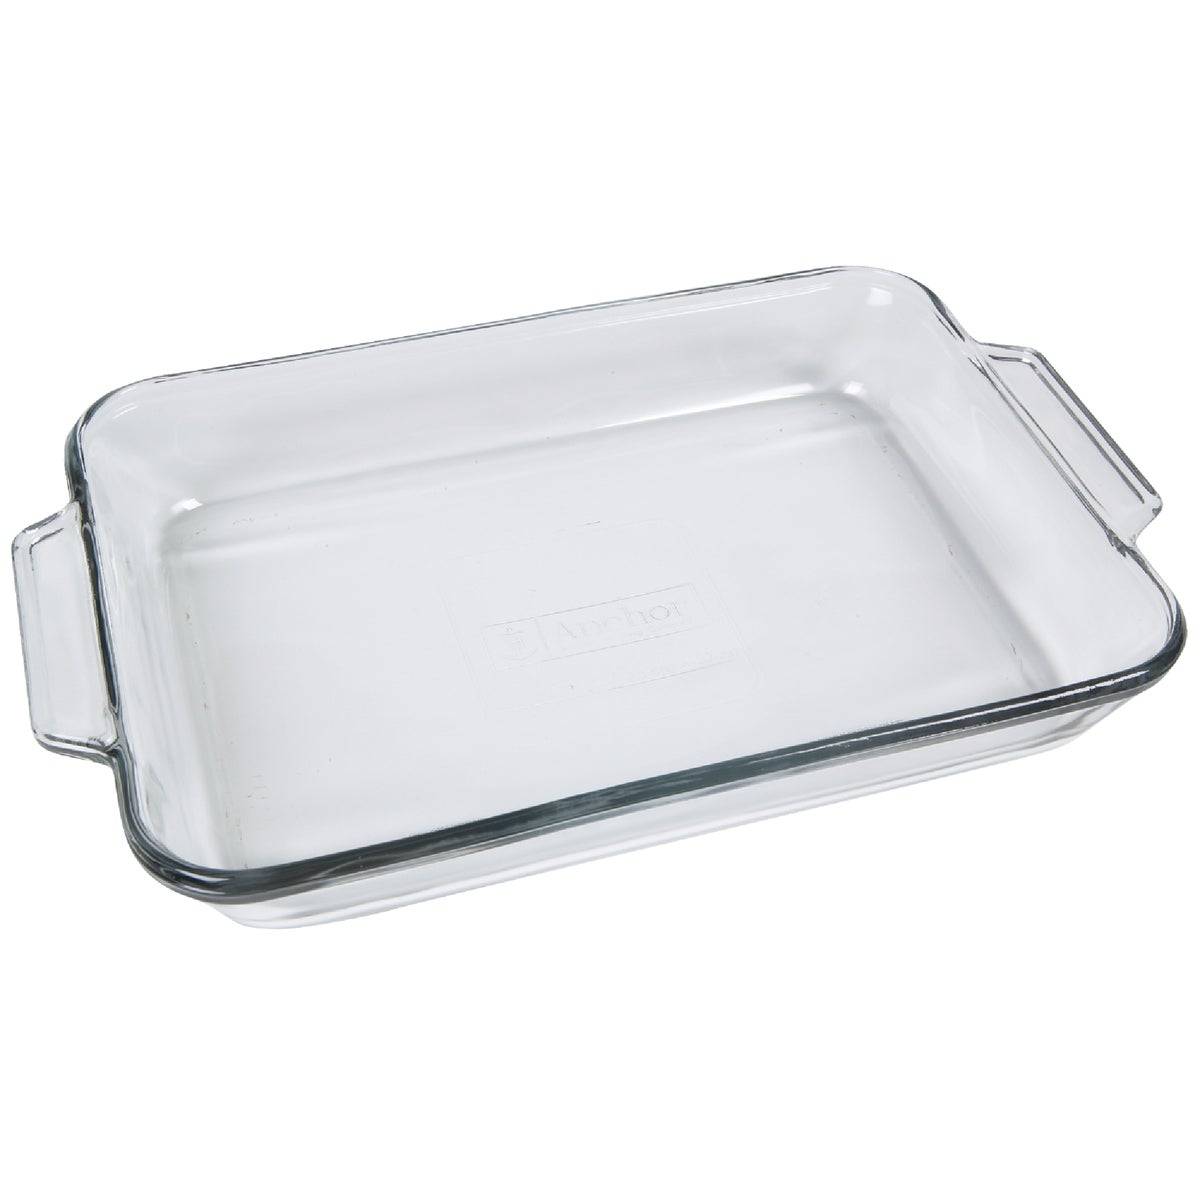 3QT GLASS BAKING DISH